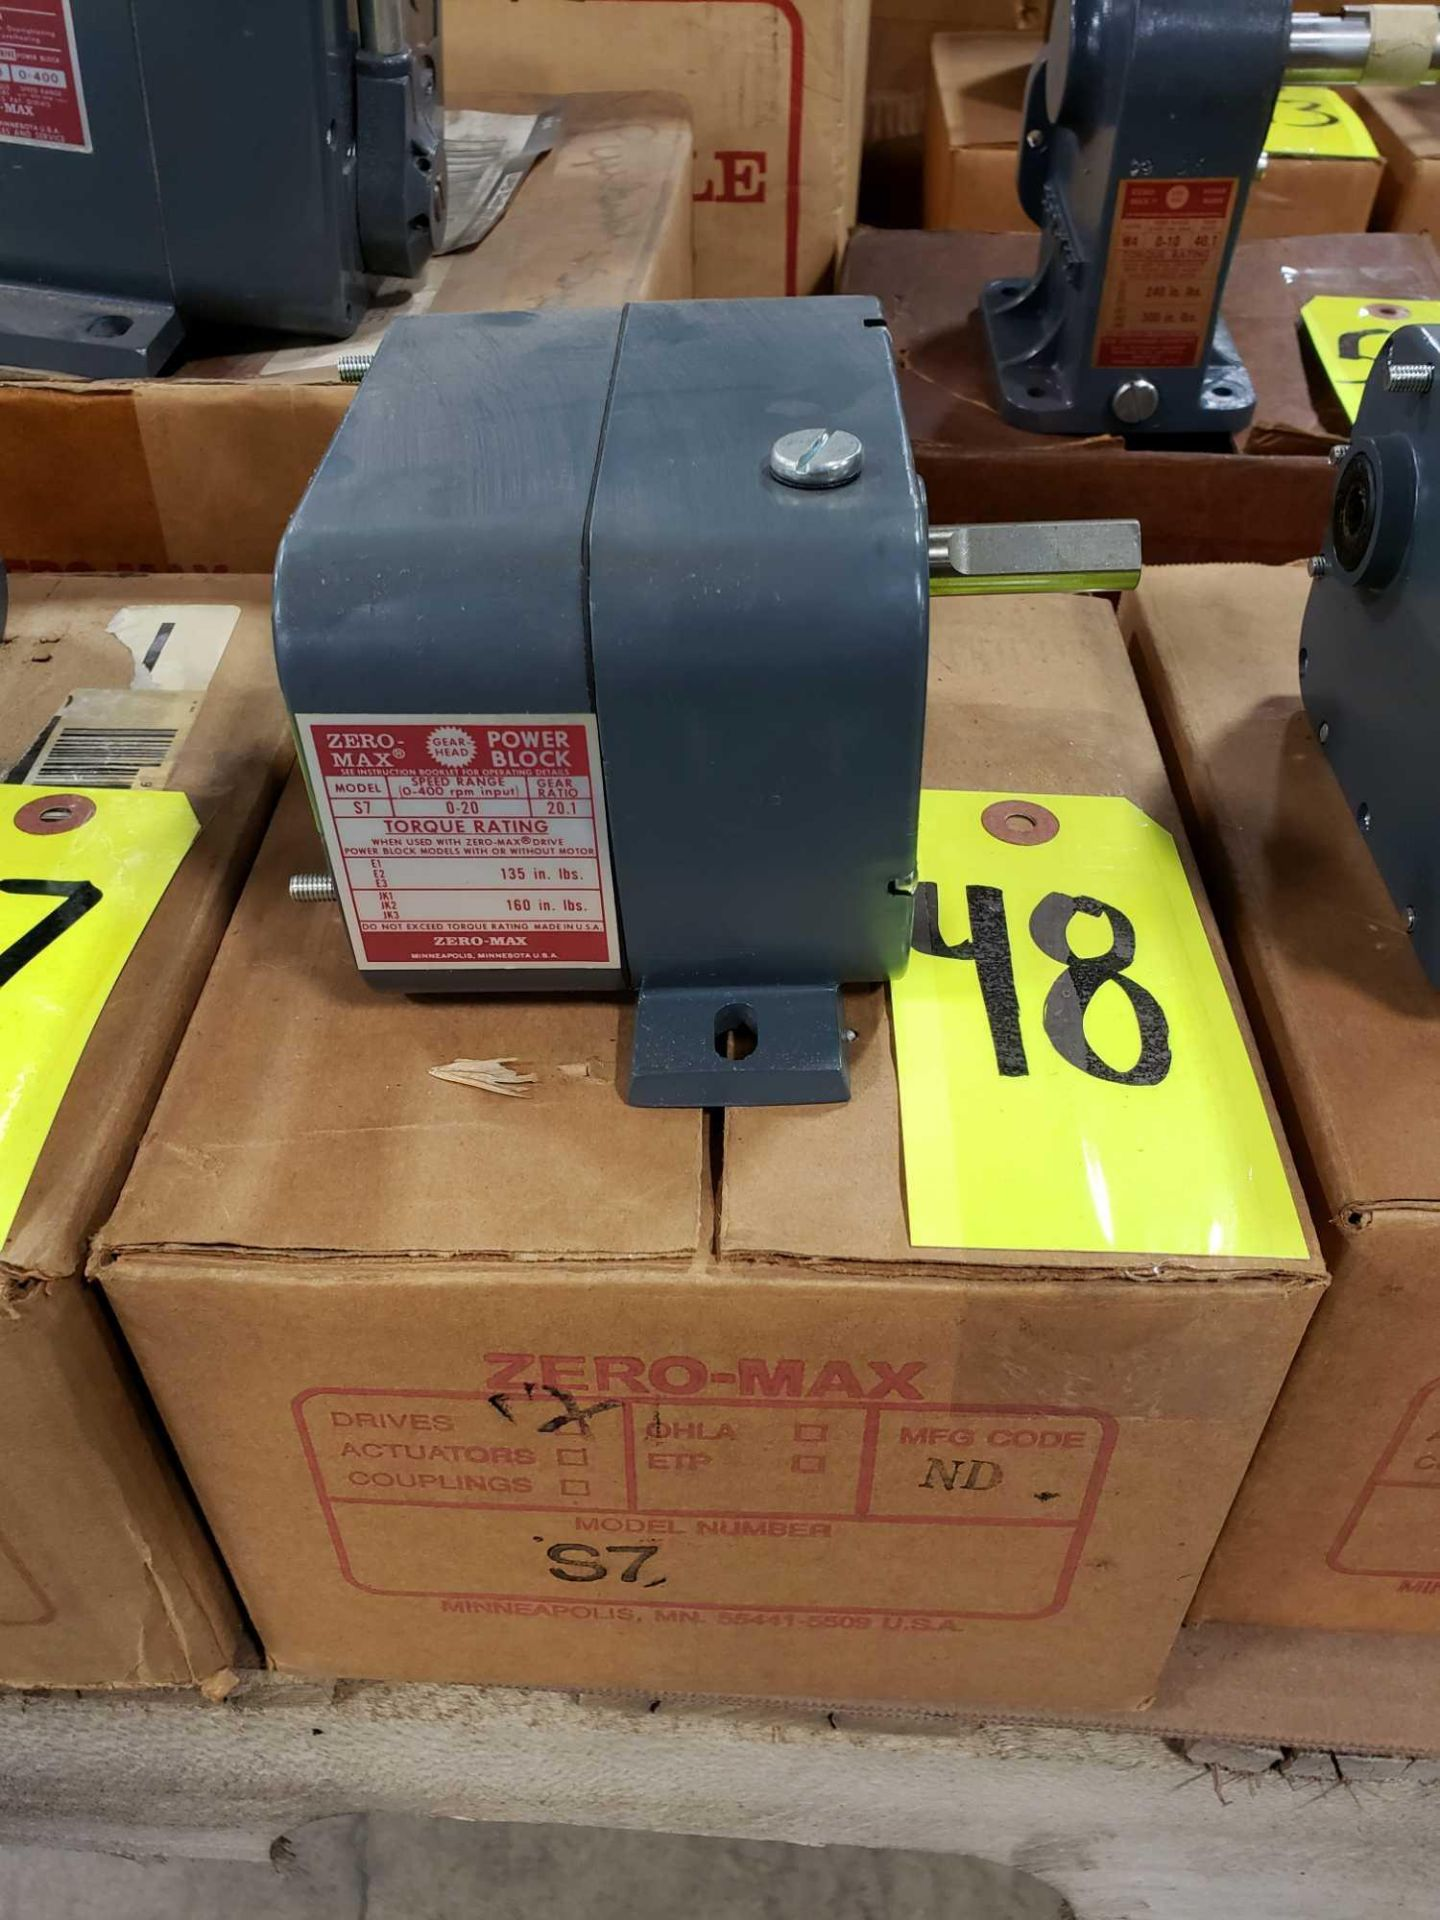 Lot 48 - Zero-max gearhead power block model S7, 0-20 output rotation, 12lb torque, 20:1 range. New in box.